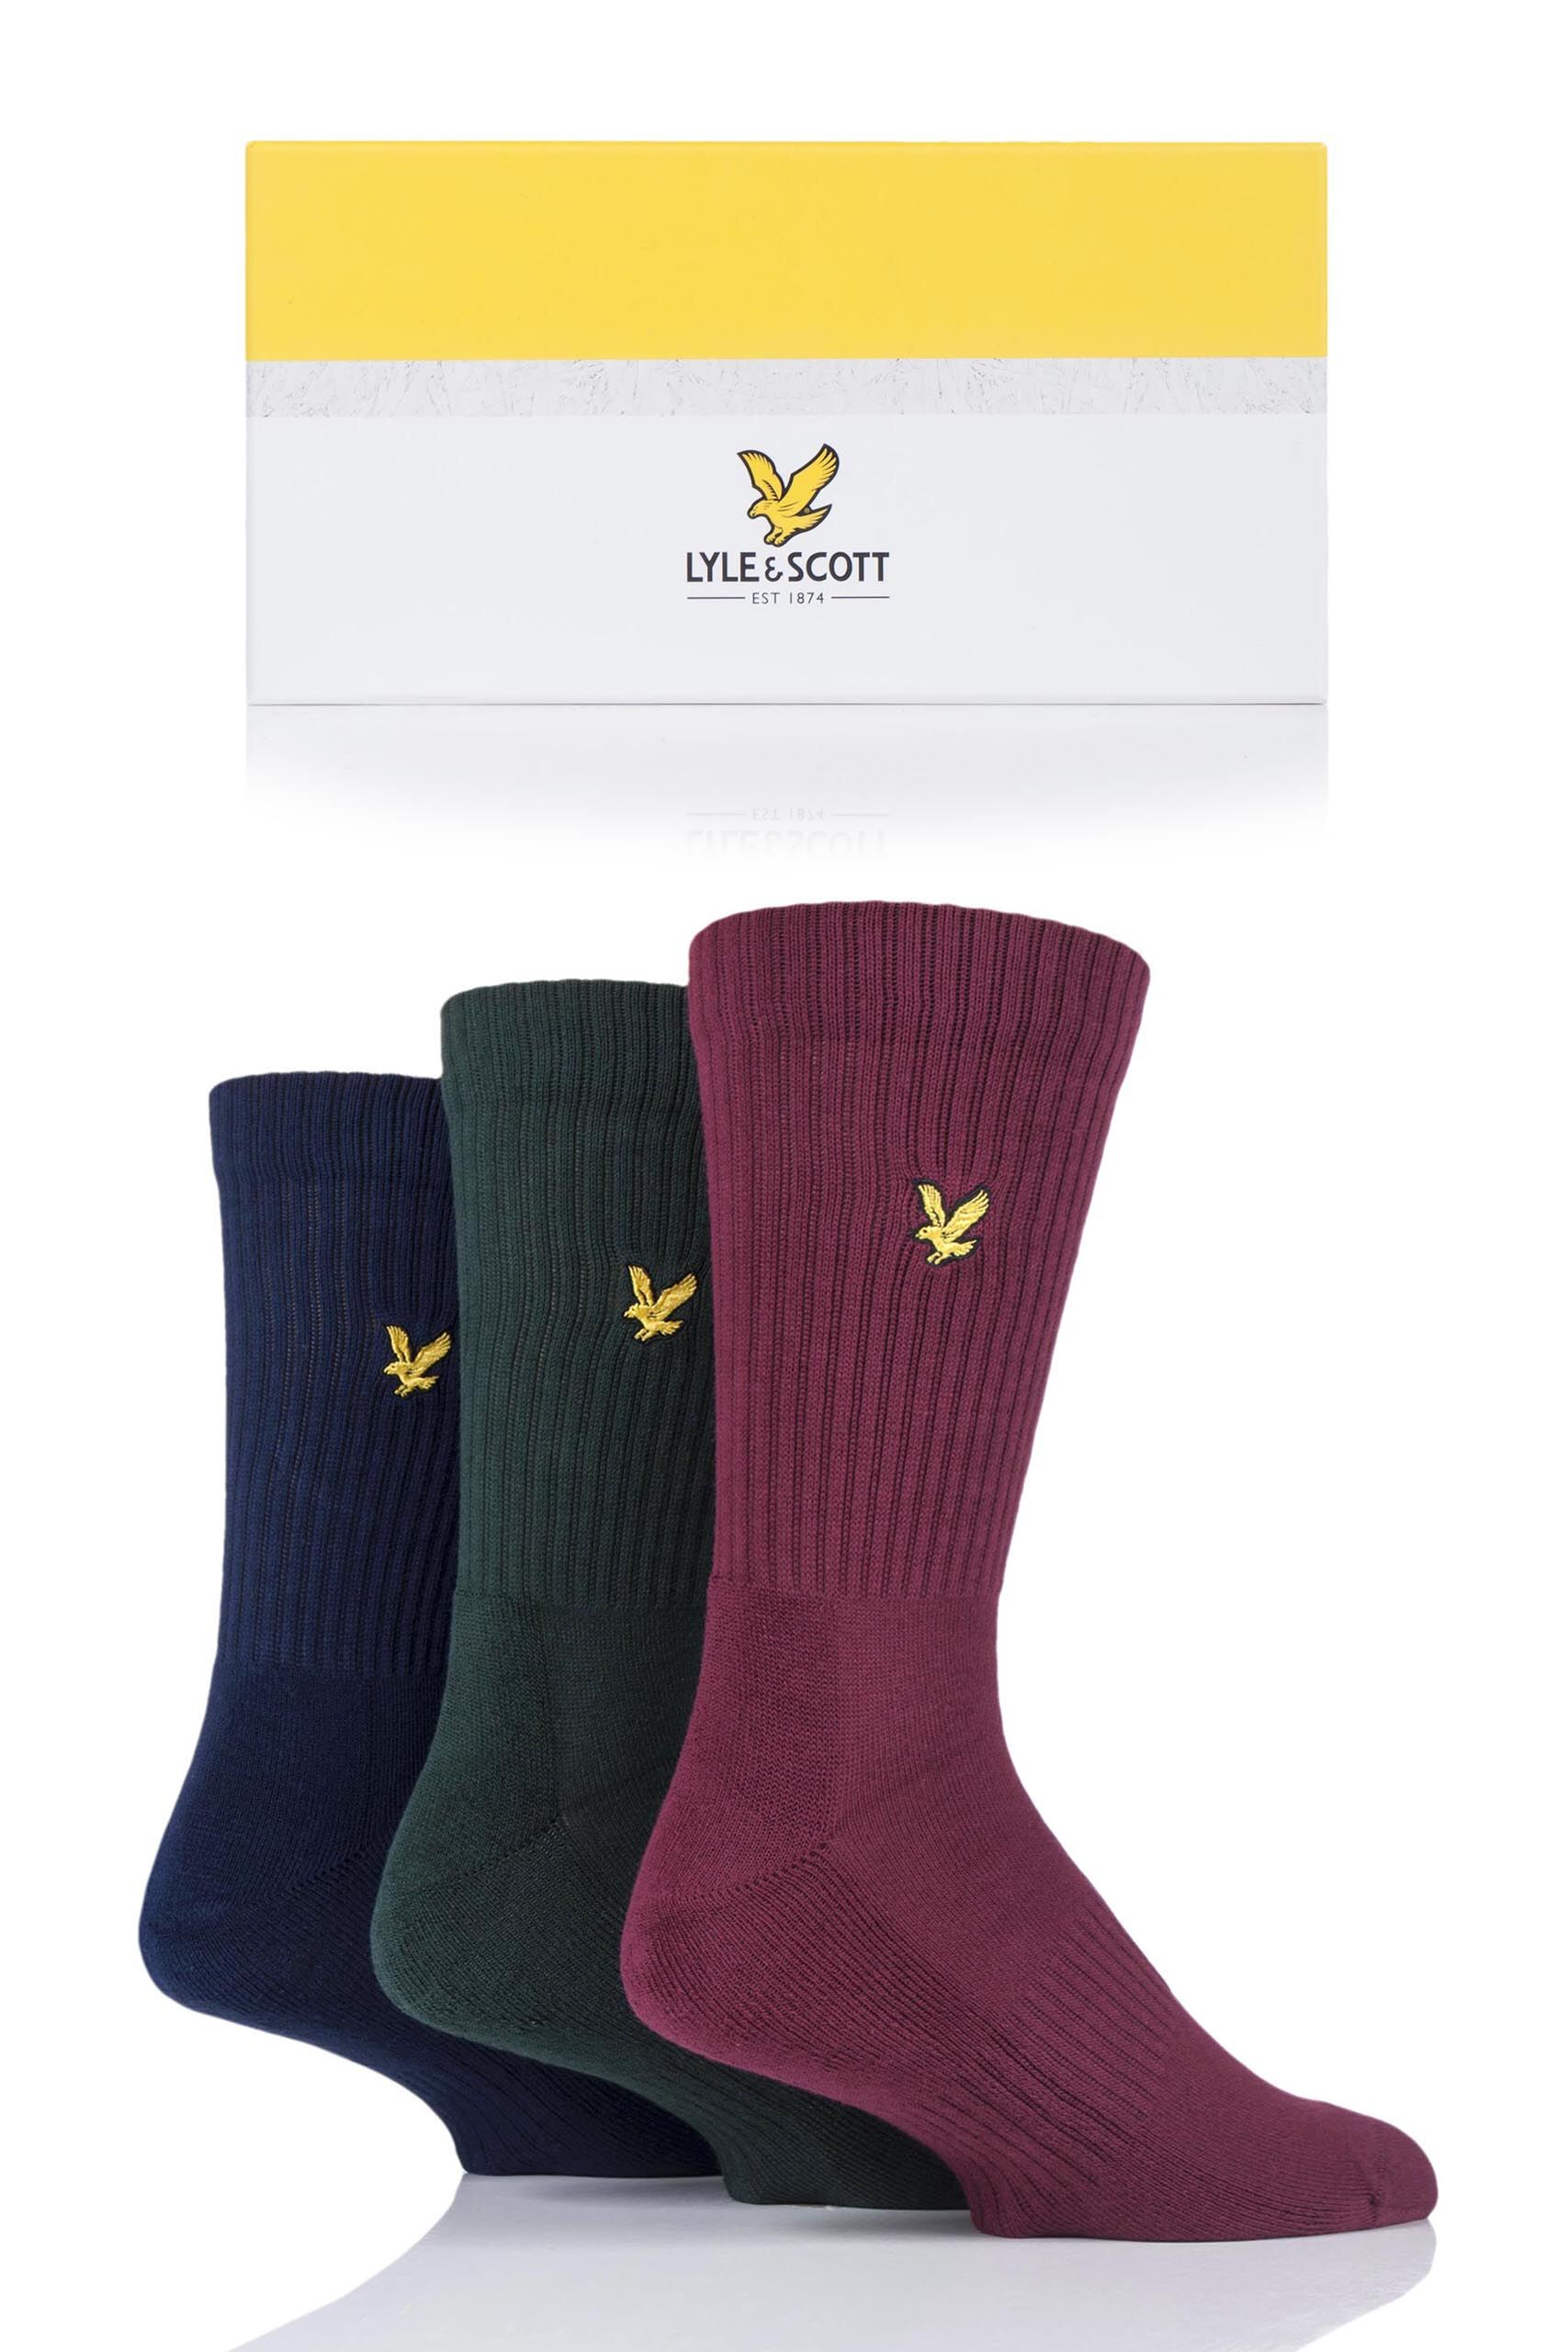 Image of 3 Pair Finlay Finlay Gift Boxed Cotton Socks Men's 7-11 Mens - Lyle & Scott